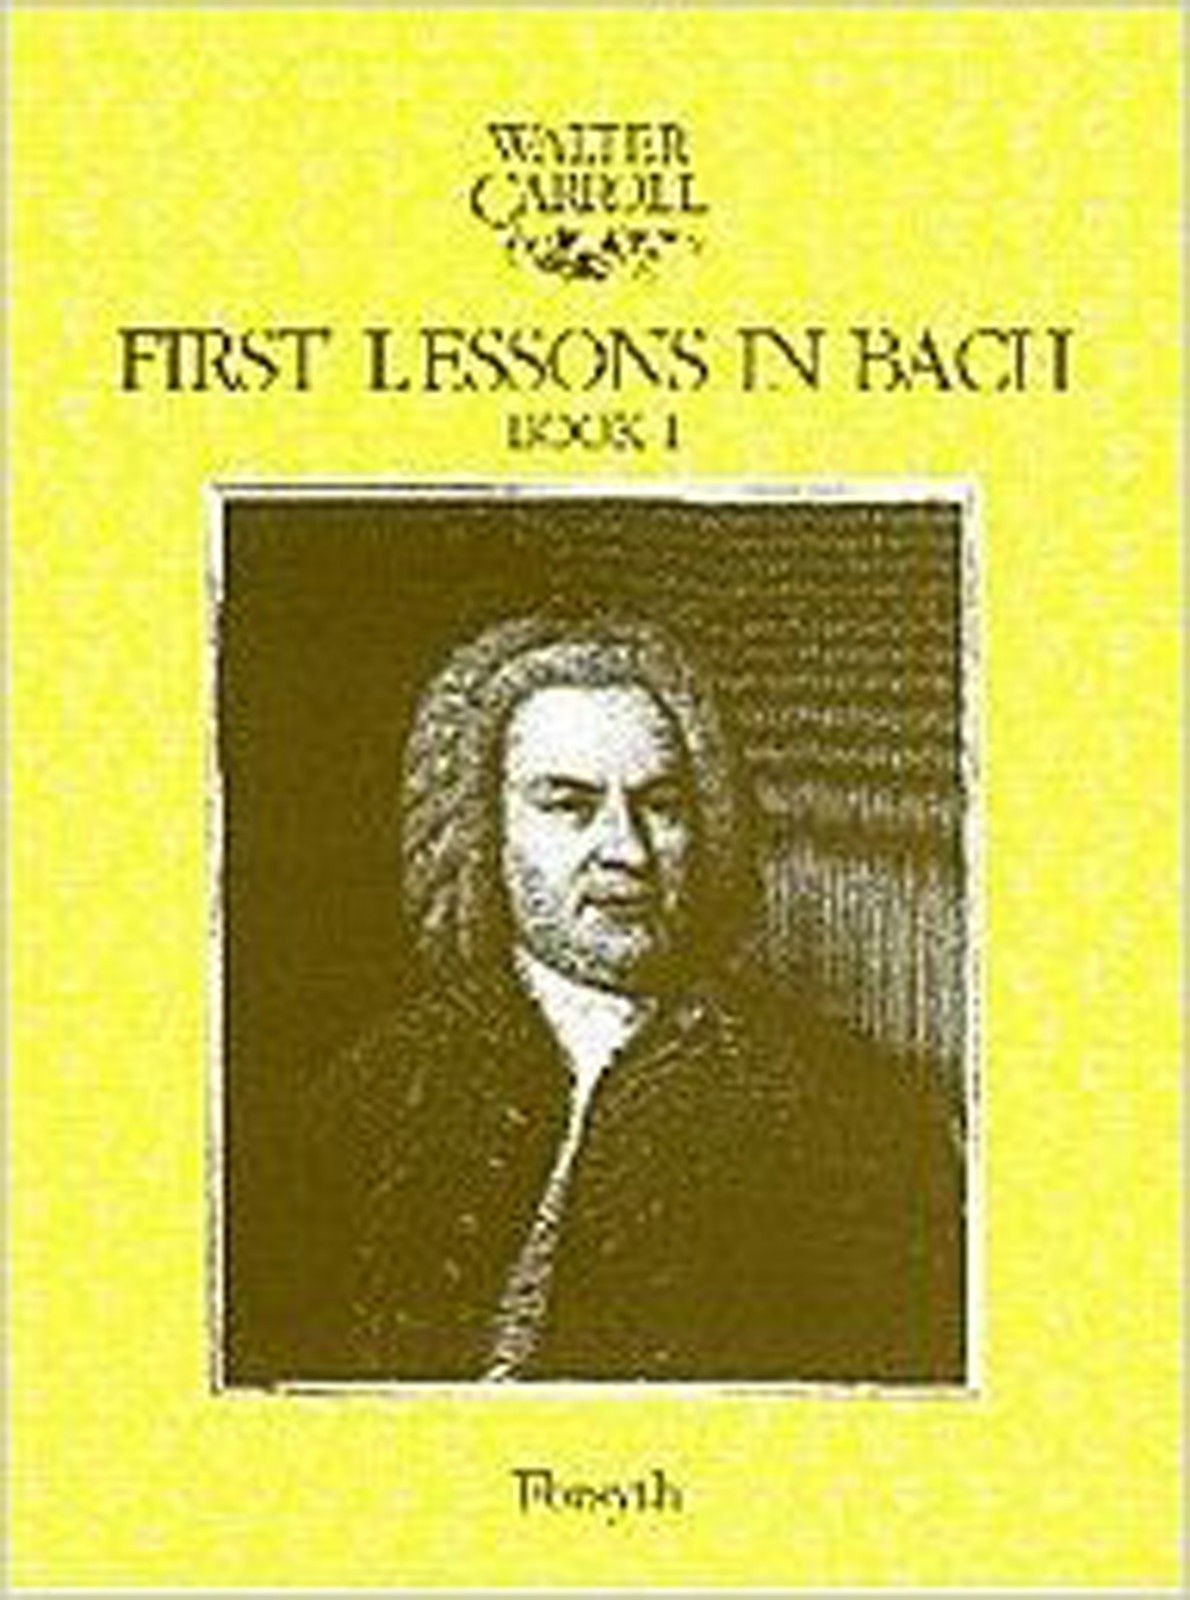 First Lessons In Bach Book 1 Walter Carroll Piano Solo Music Book Grade 2 B85